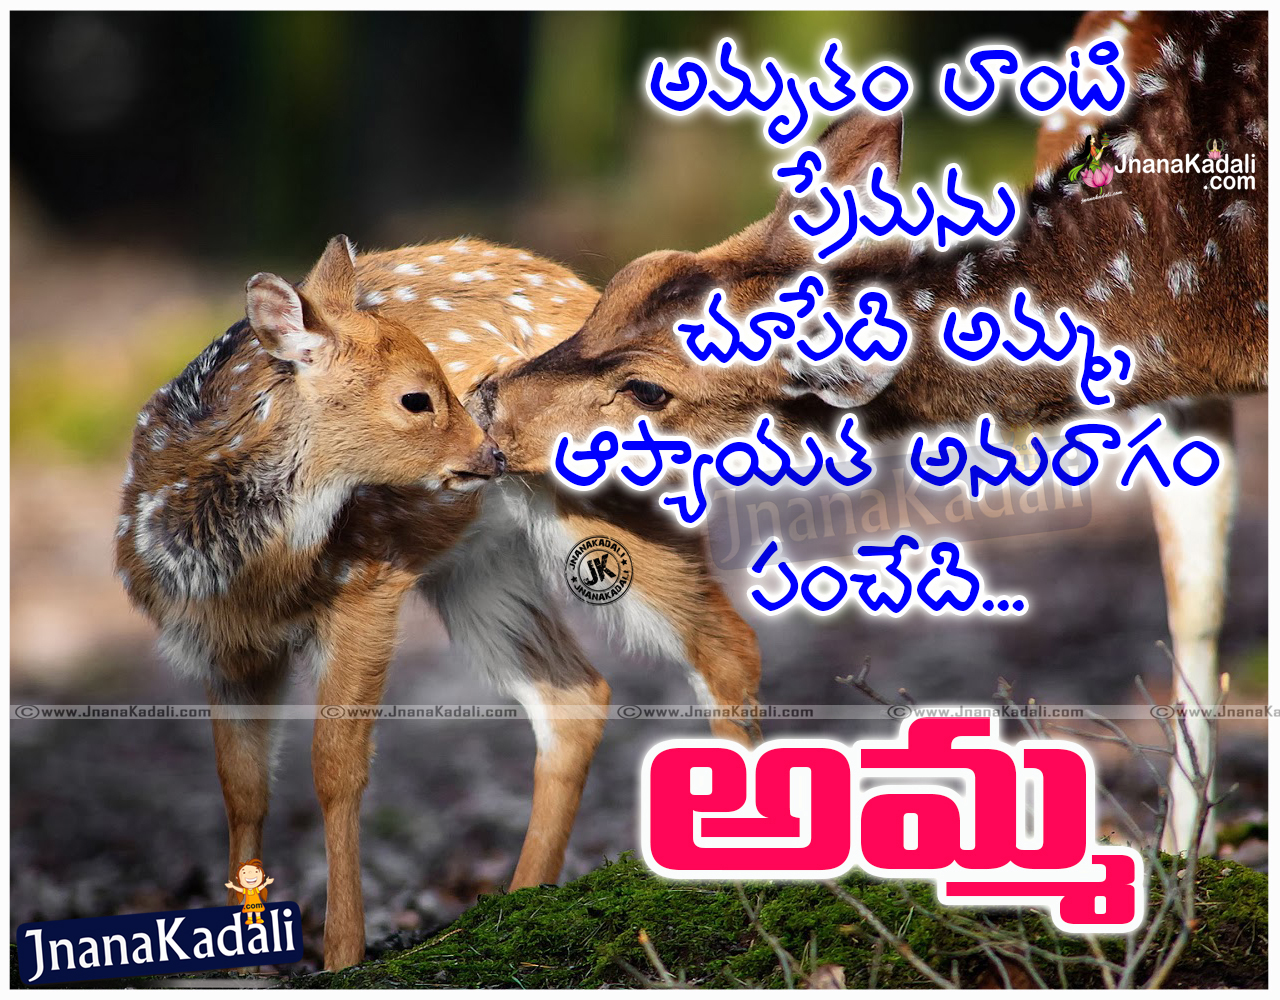 Nice Wallpapers With Quotes About Life In Hindi Best Telugu Amma Mother Sentiment Dialogues And Telugu